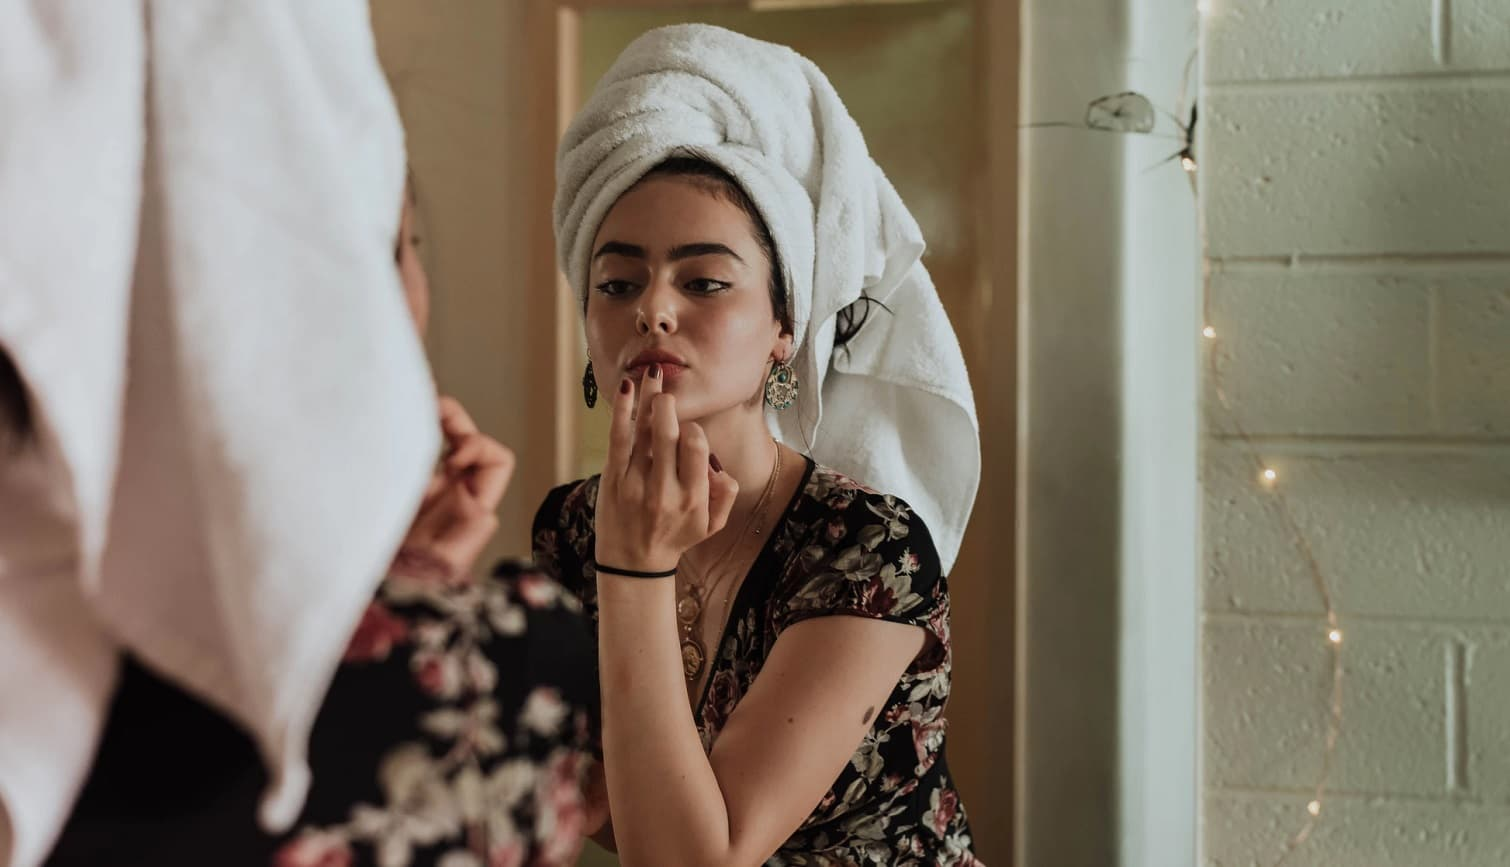 makeup in the mirror